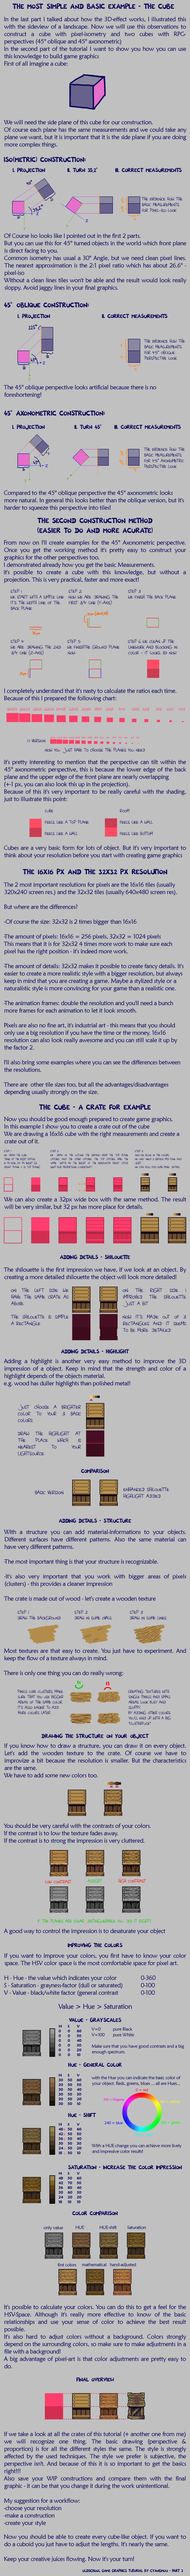 Pixel Art Tutorial 3 - The 'perfect' crate by ~Cyangmou